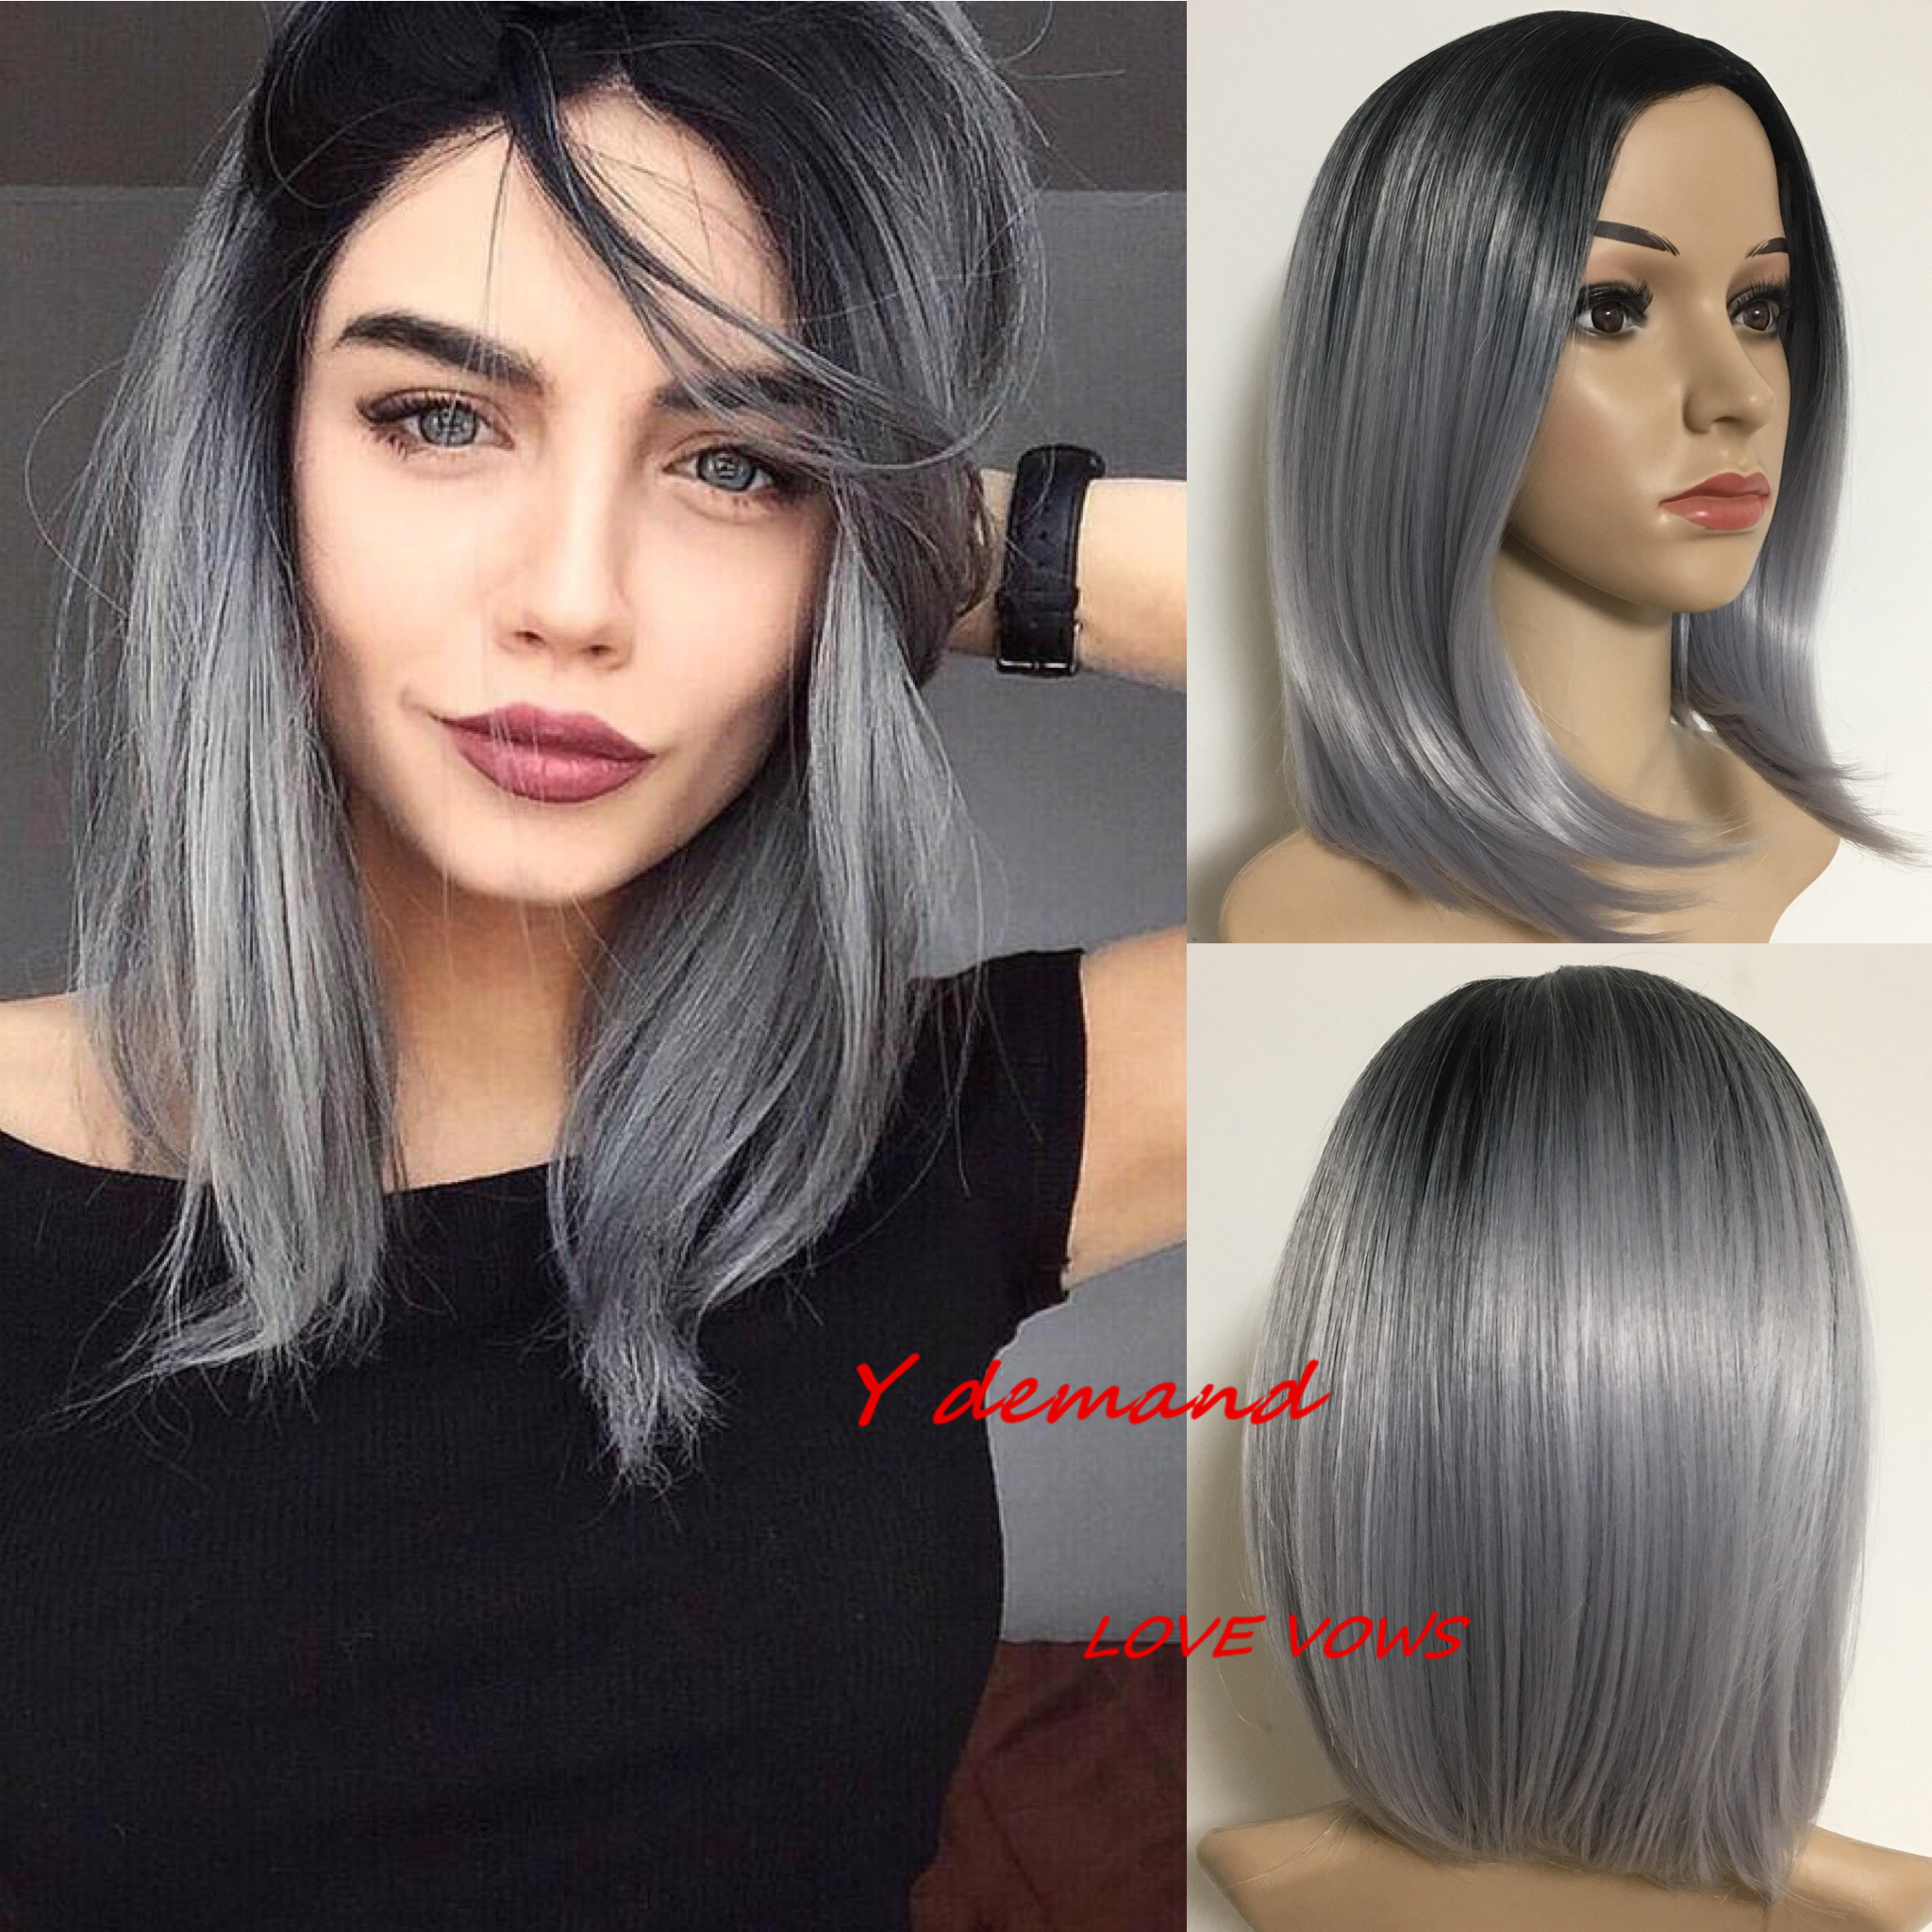 Discount Black Grey Ombre Short Hair Black Grey Ombre Short Hair 2020 On Sale At Dhgate Com